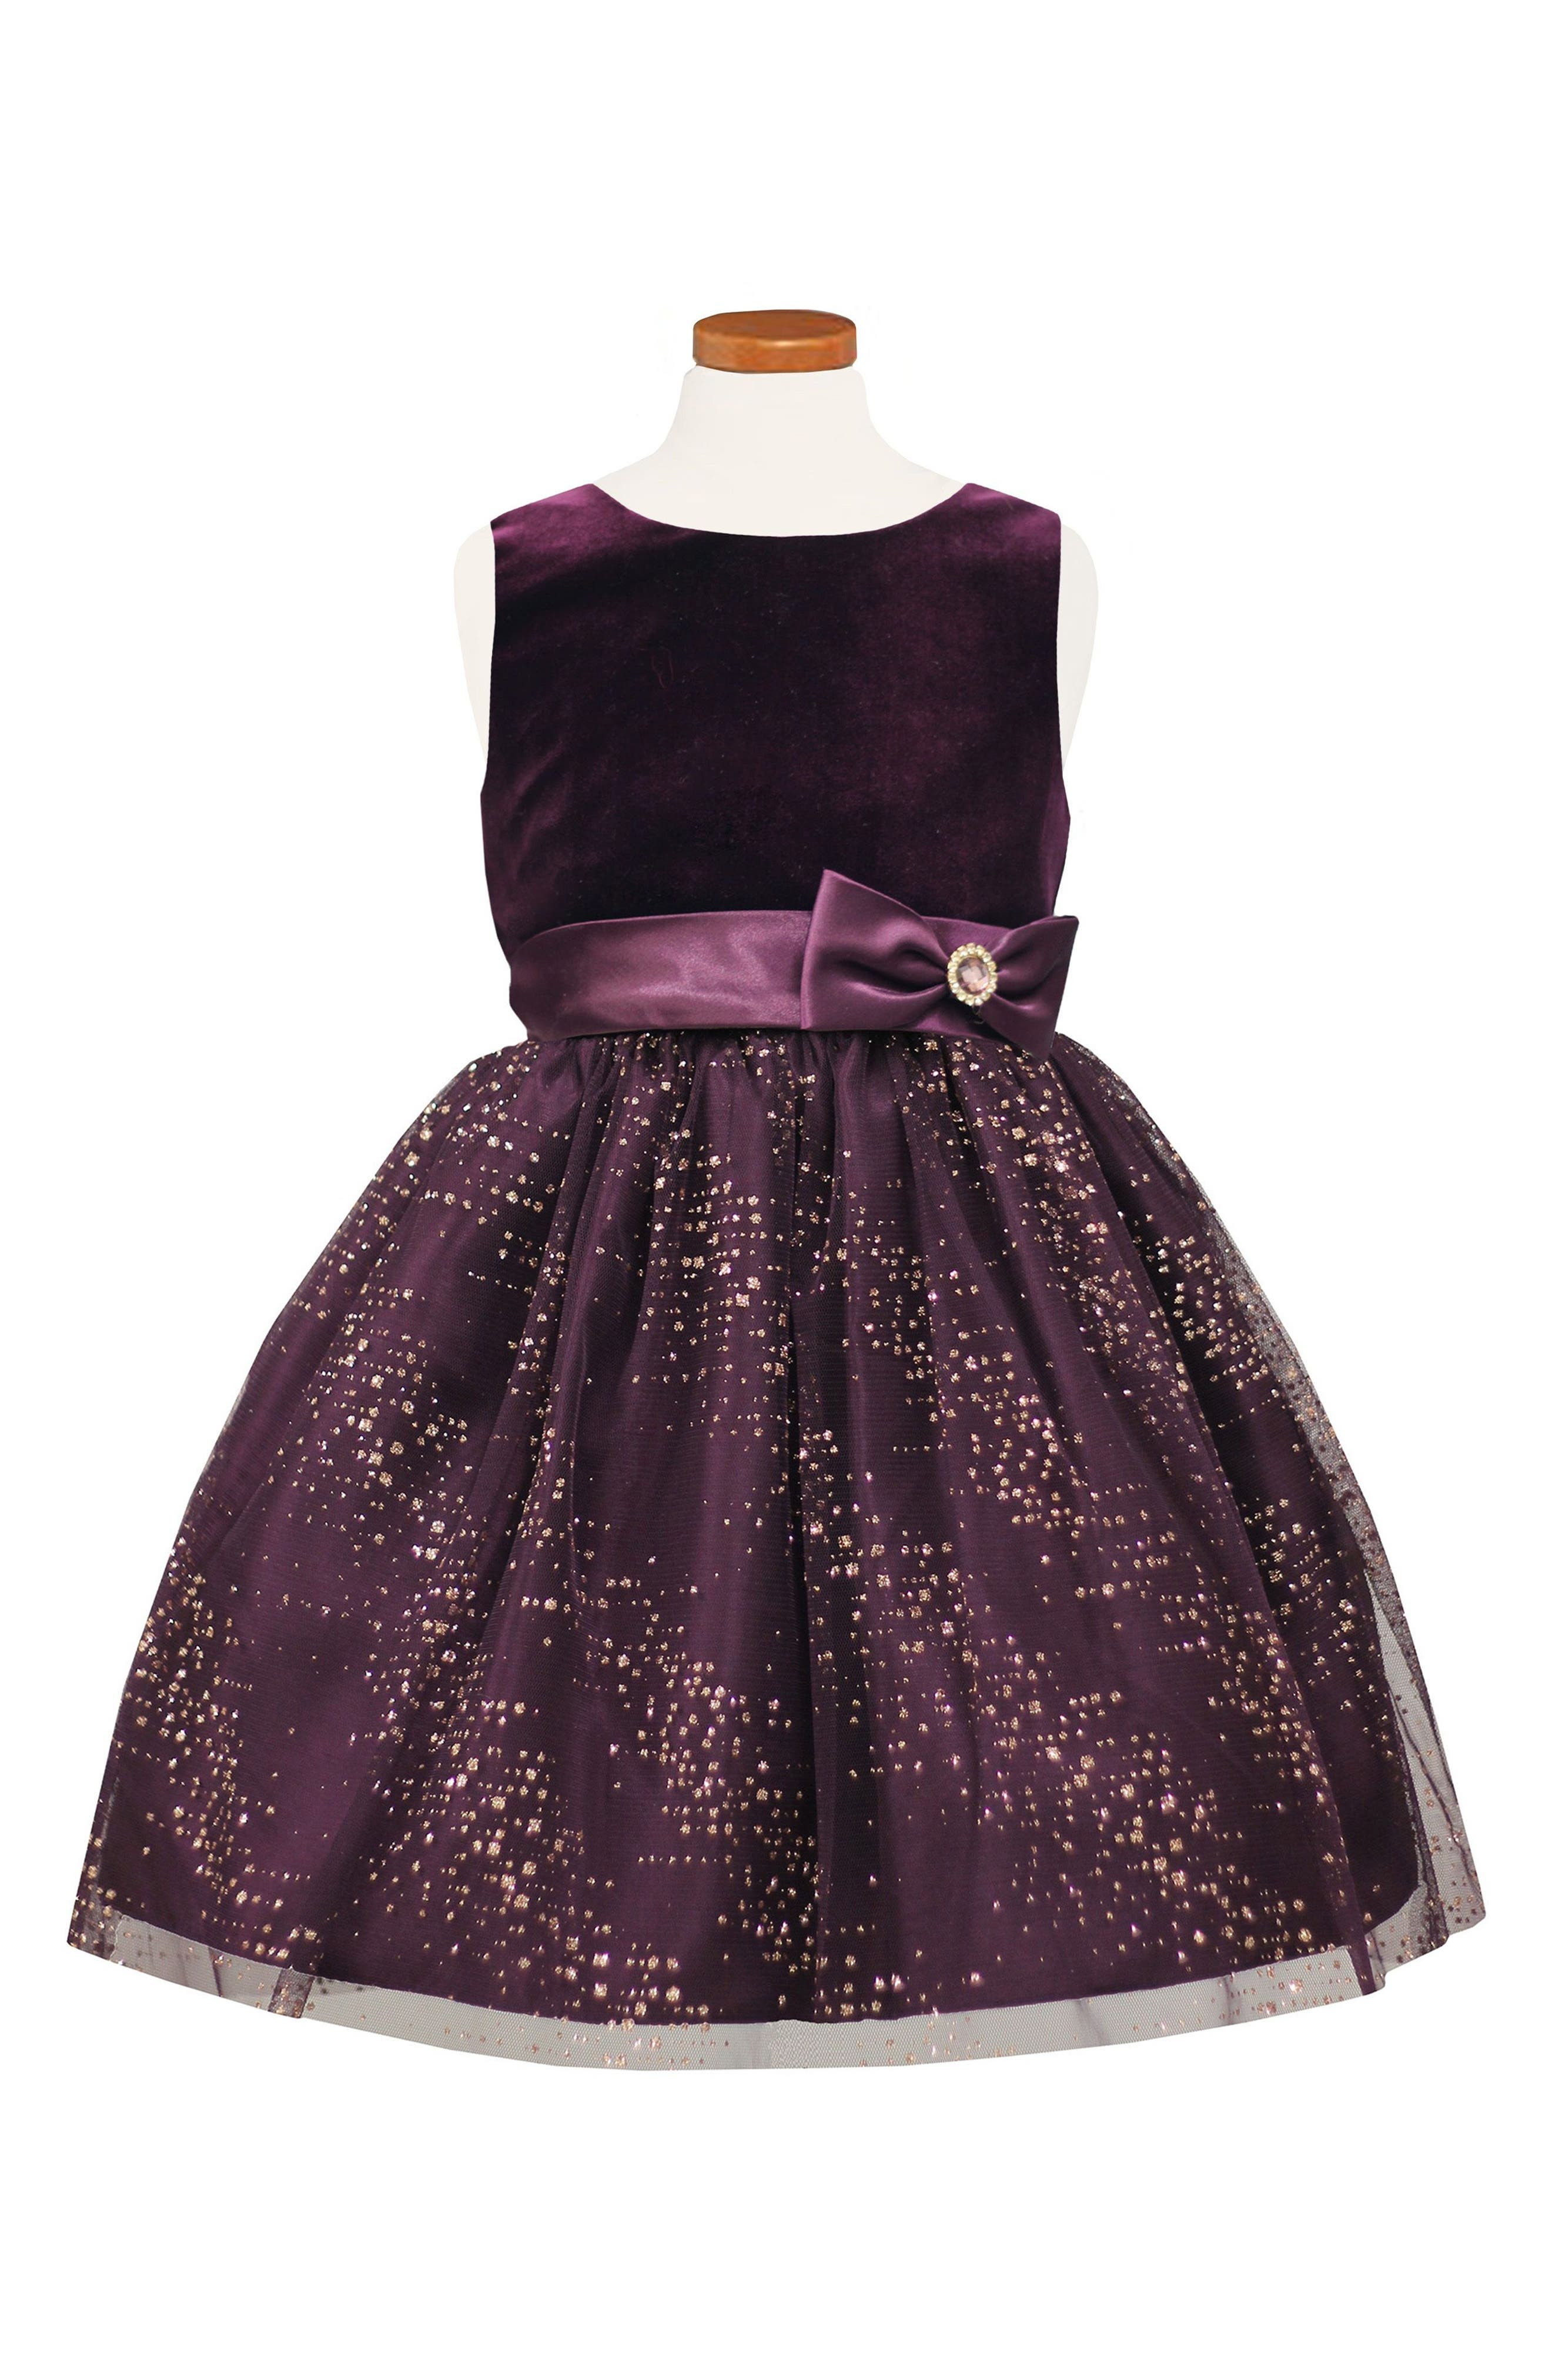 Main Image - Sorbet Velvet Bodice Fit & Flare Dress (Big Girls)